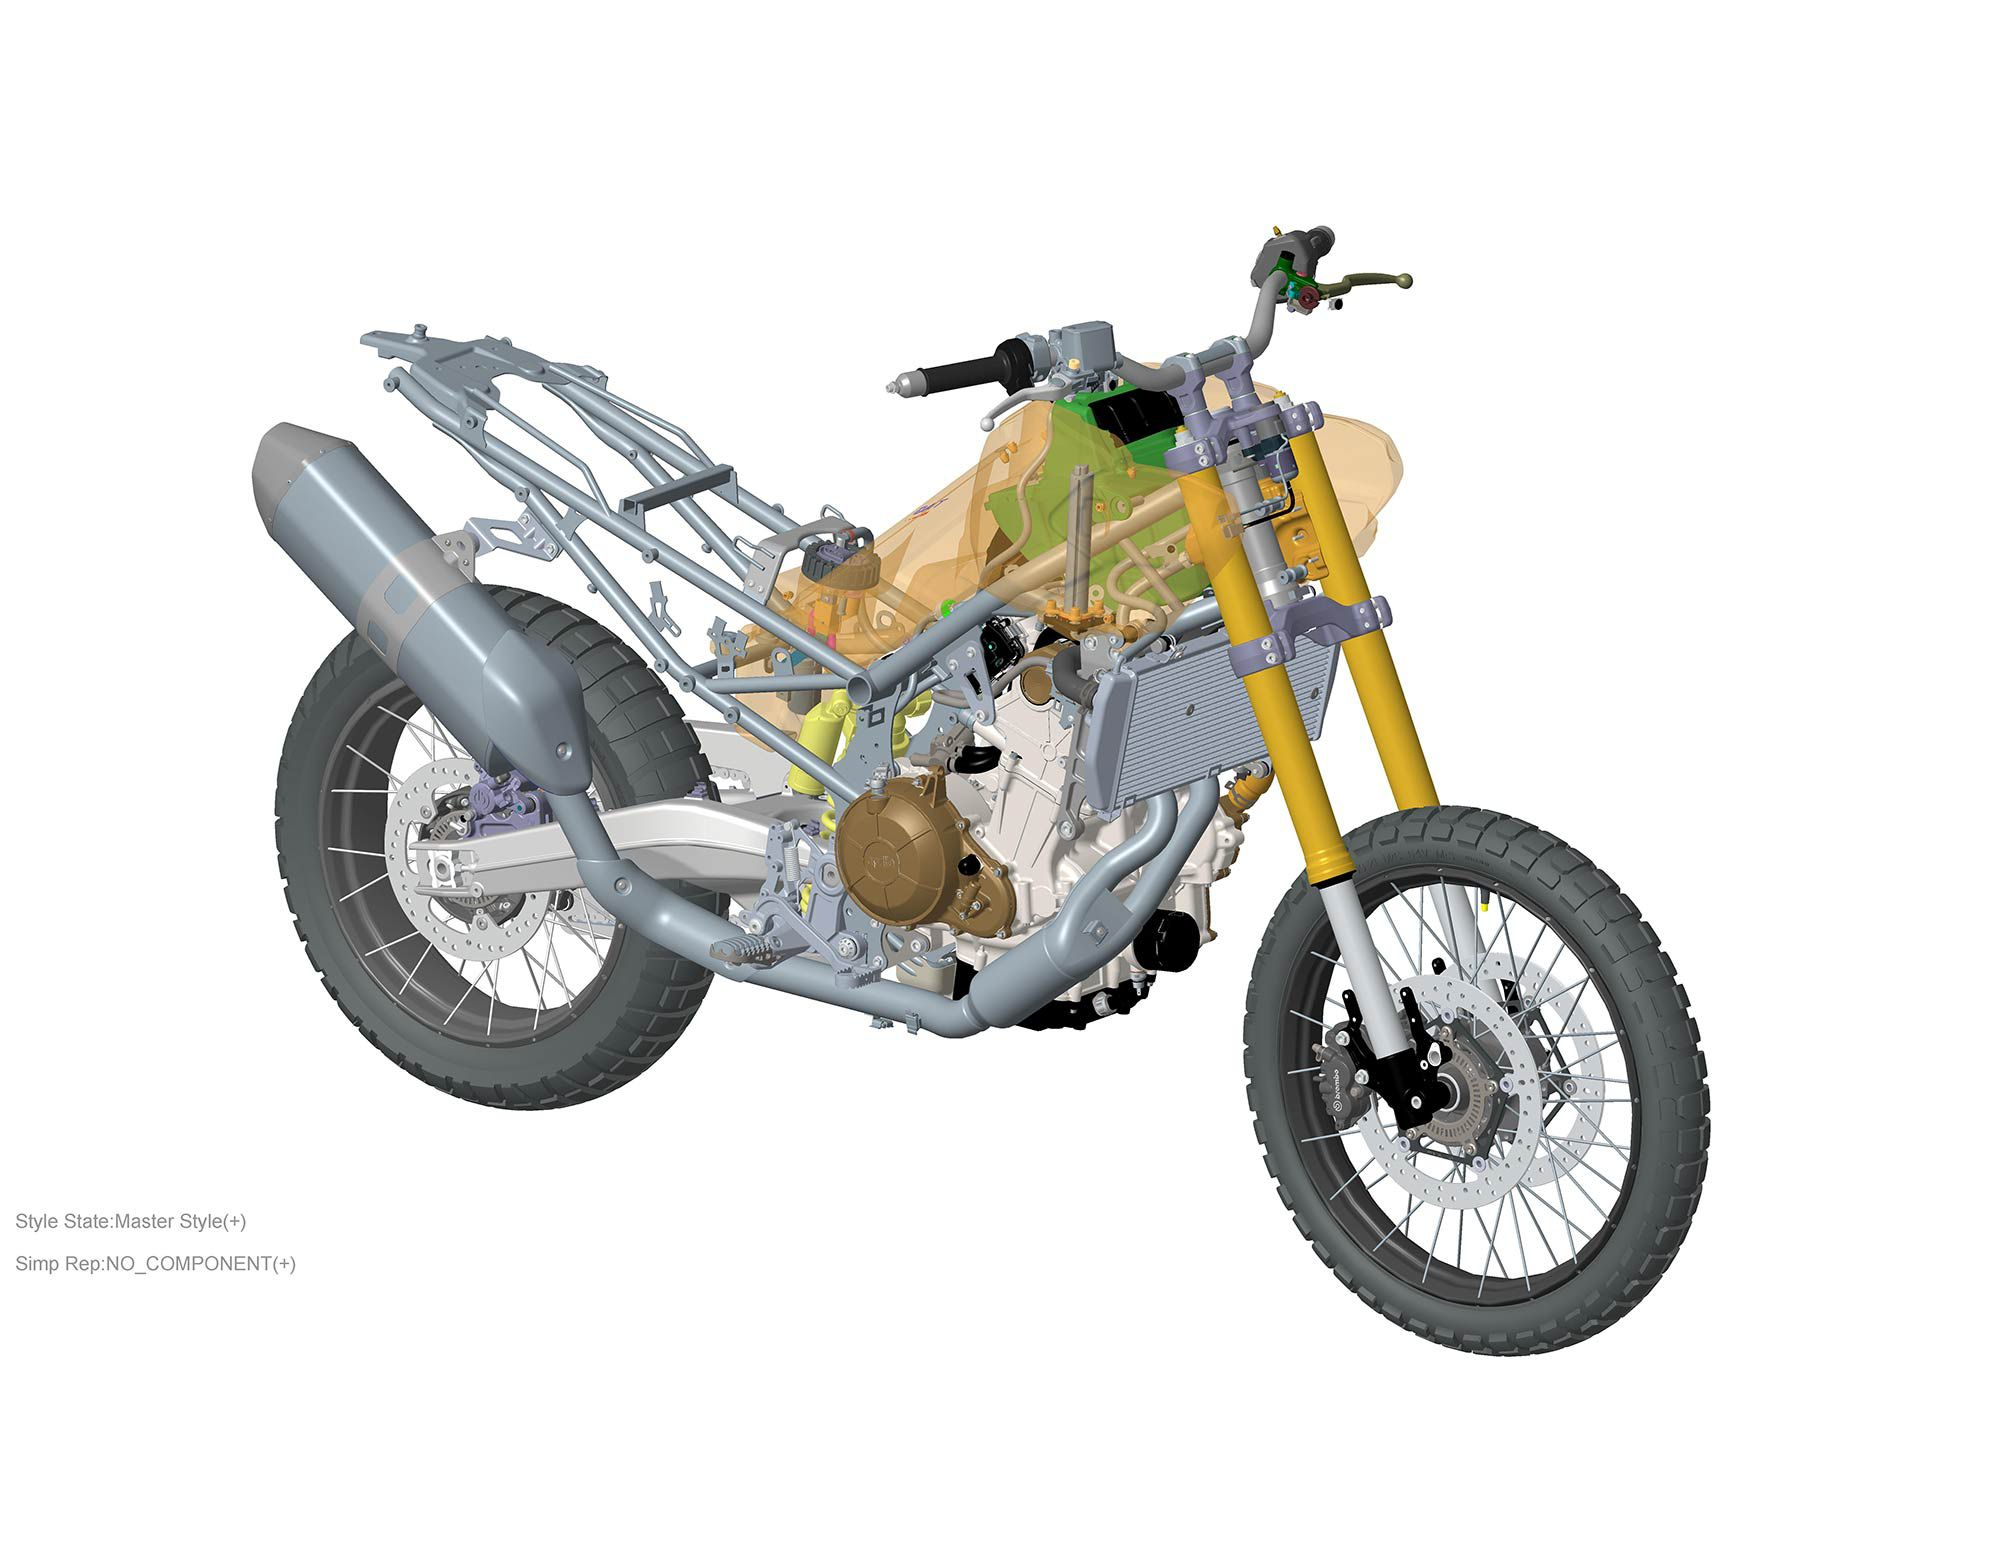 The Tuareg 660′s fuel tank holds 4.8 gallons and extends behind the engine to make space for the airbox.